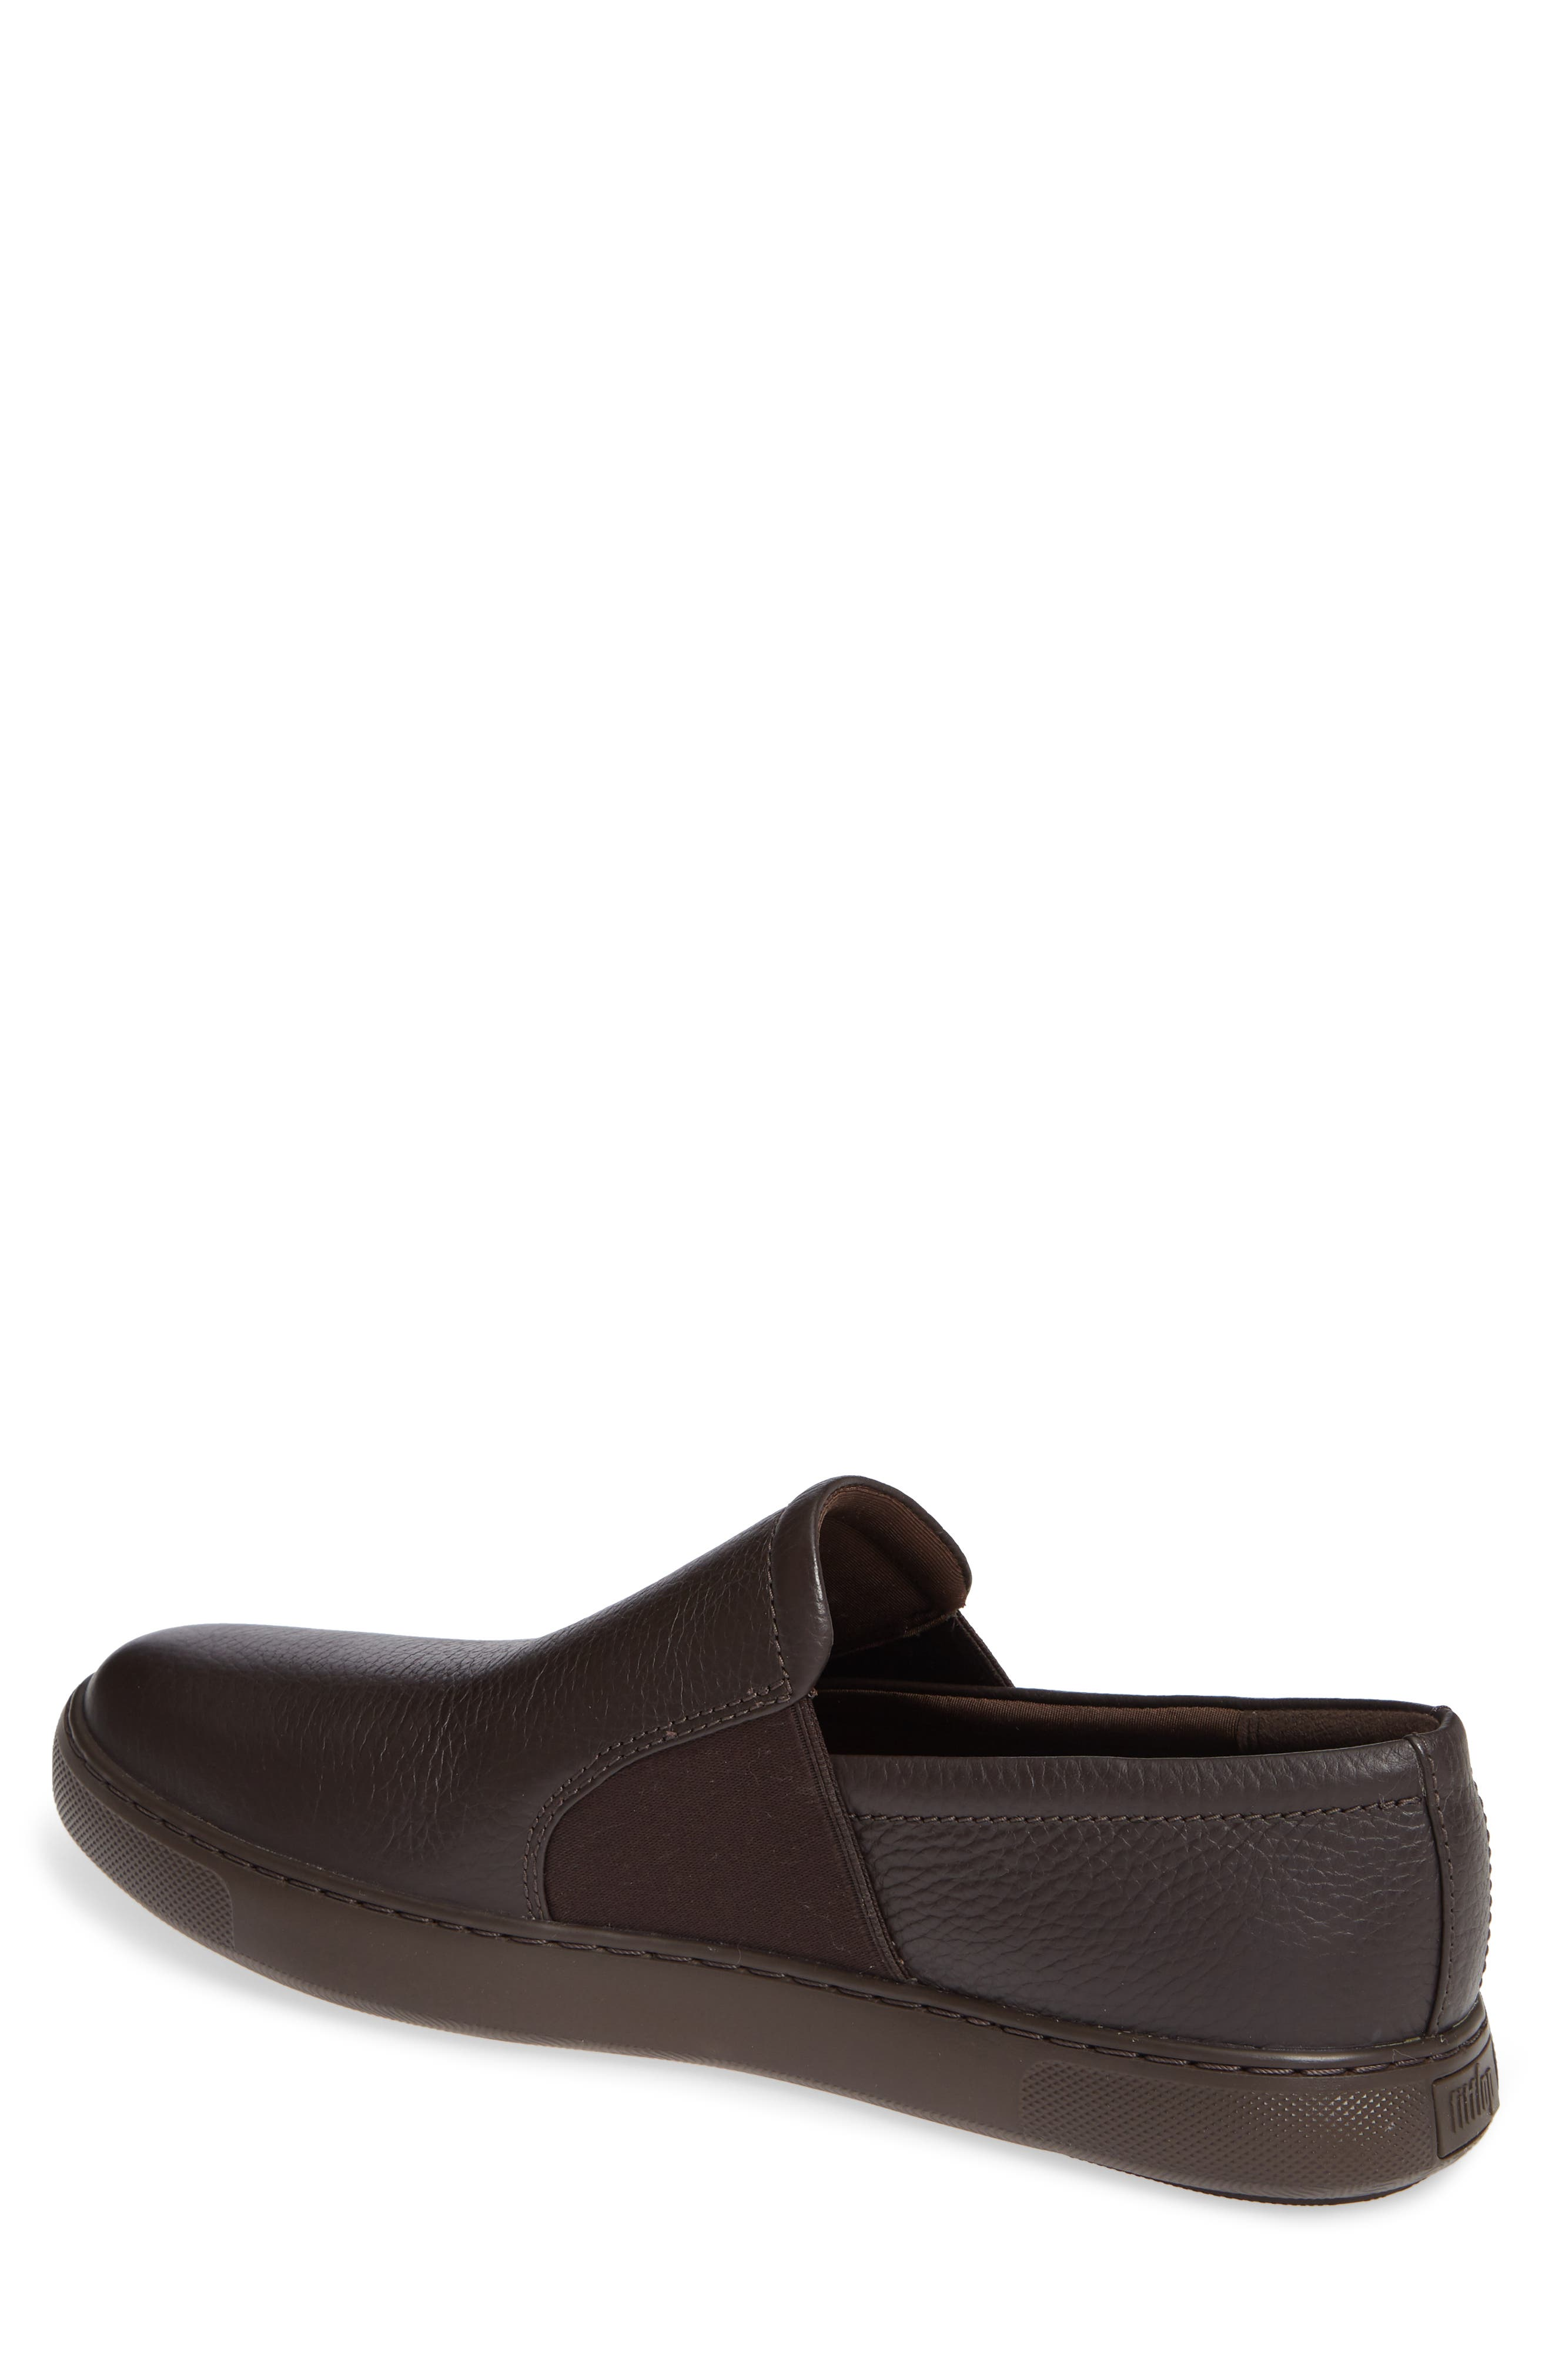 Collins Slip-On Sneaker,                             Alternate thumbnail 2, color,                             CHOCOLATE